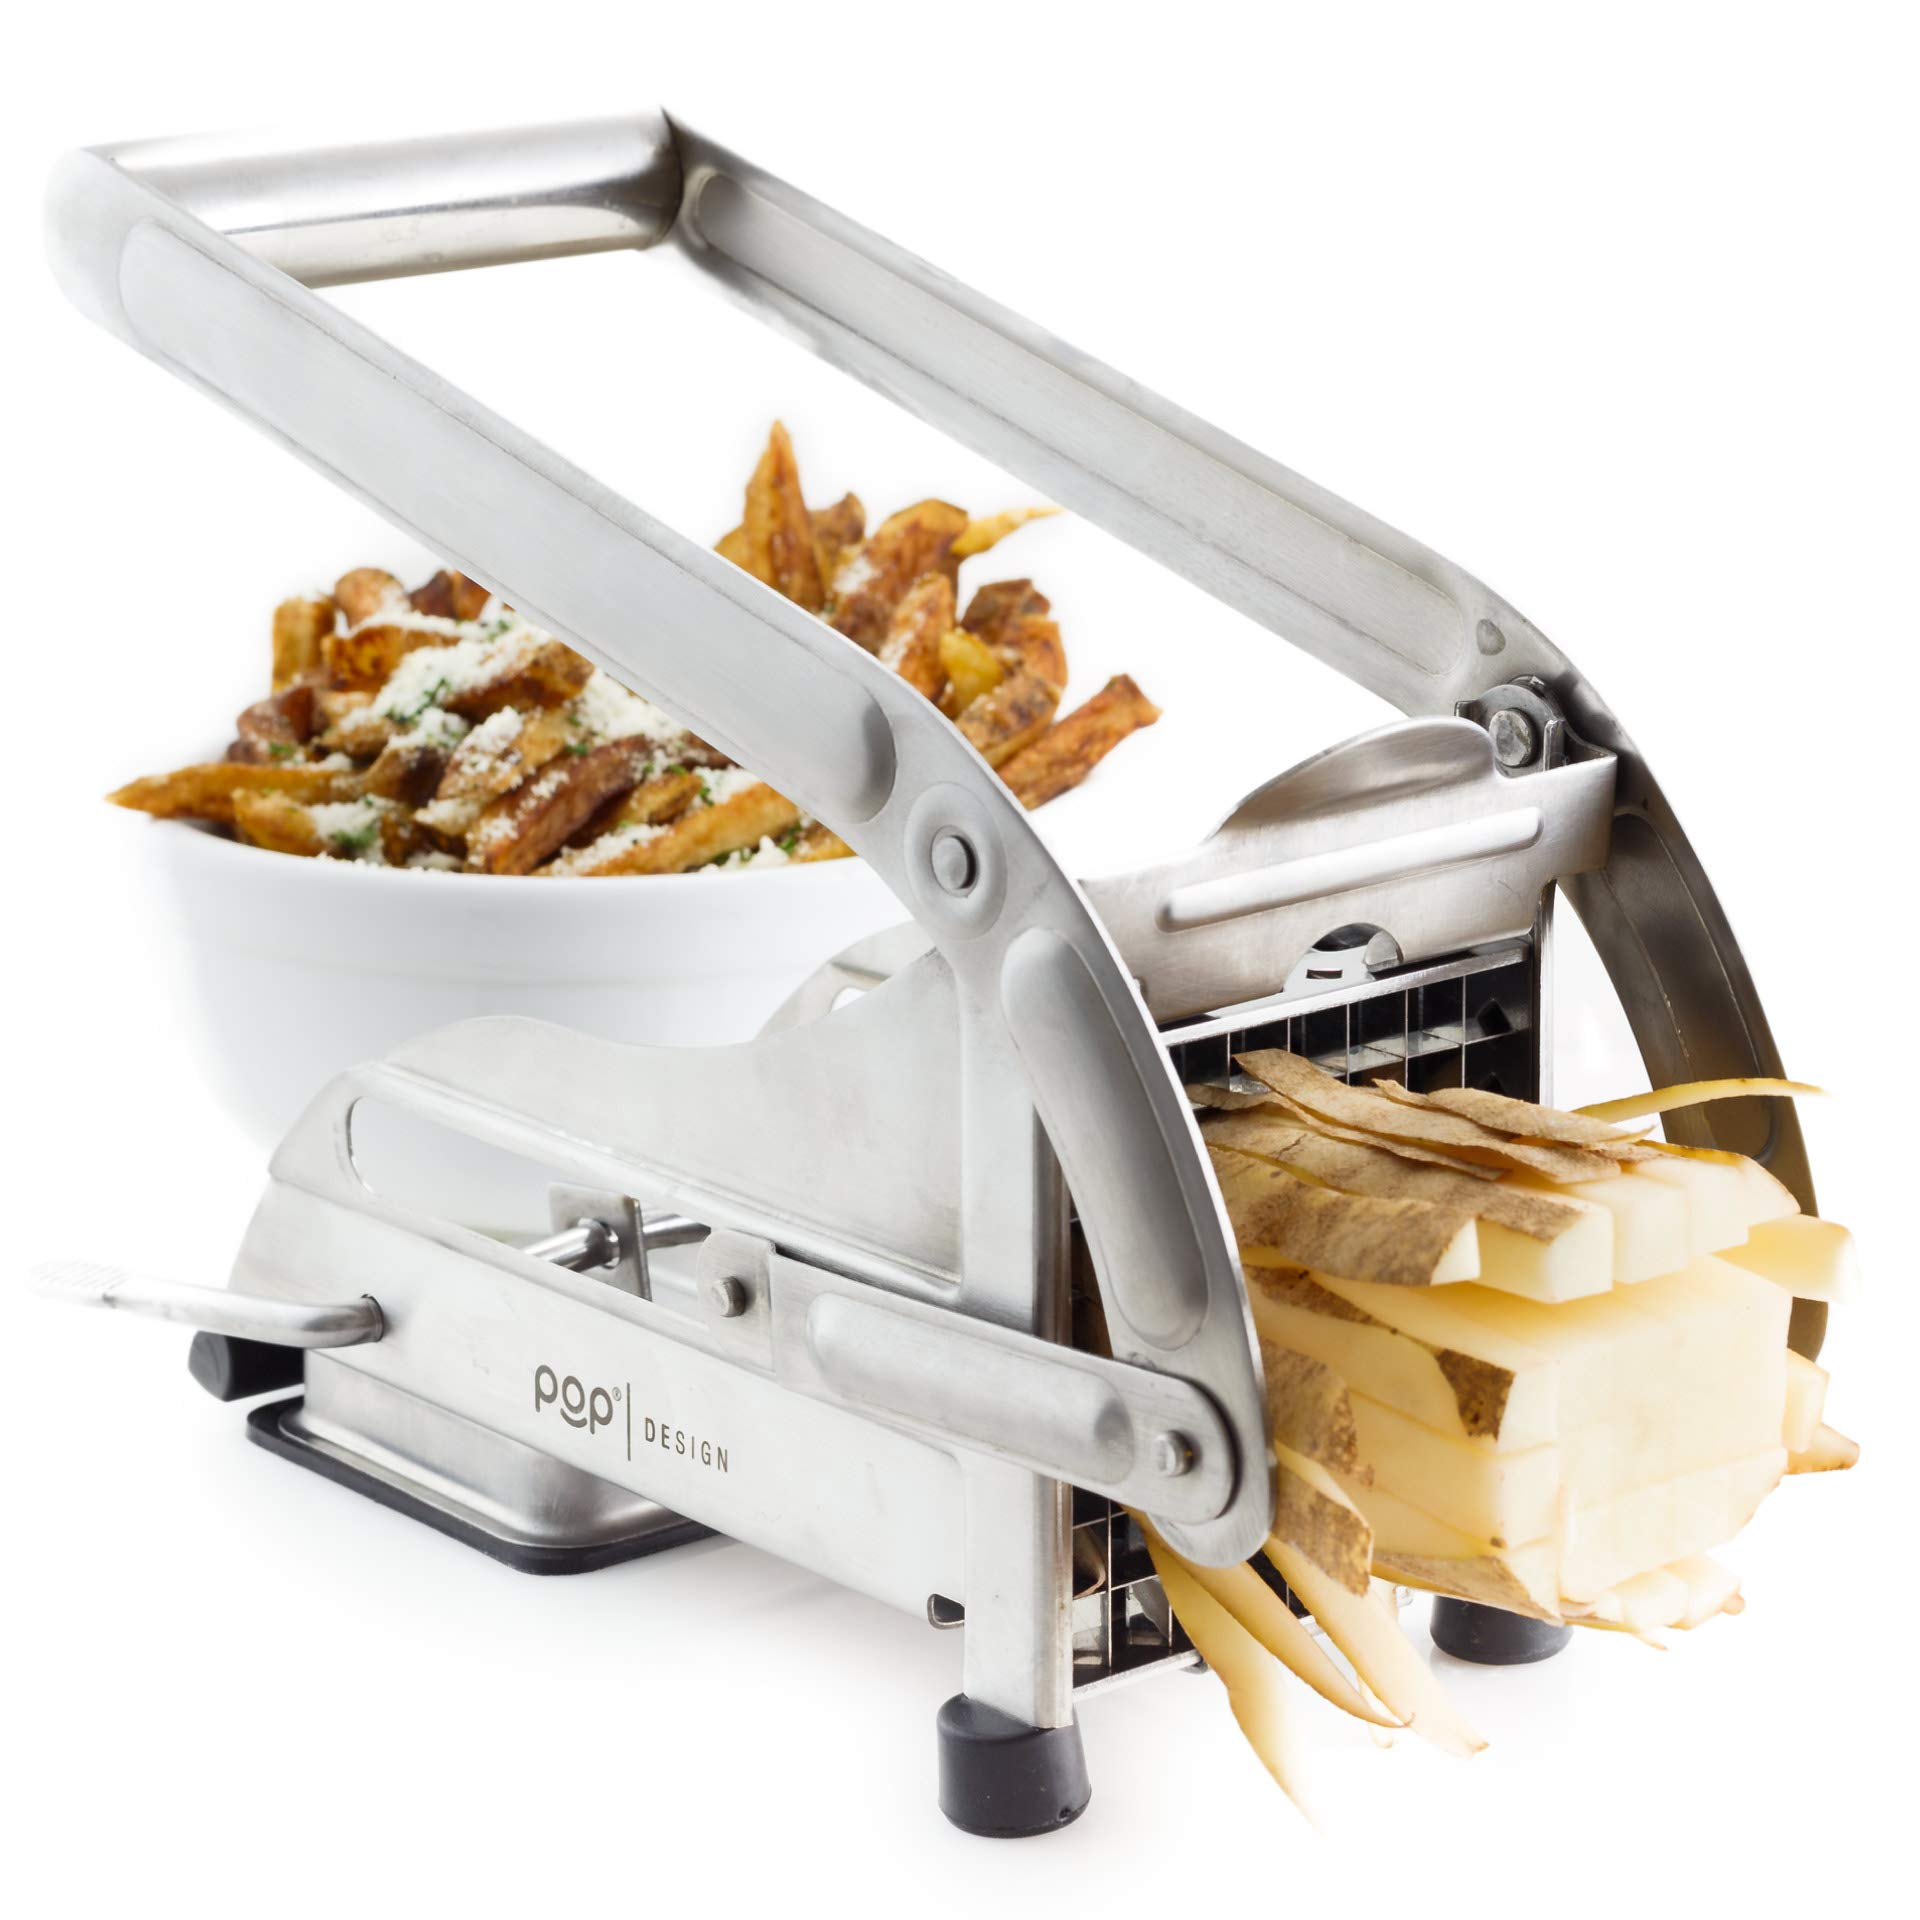 AirFry Mate, Stainless Steel French Fry Cutter, Commercial Grade Vegetable and Potato Slicer, Includes two Blade Size Cutter Options and No-Slip Suction Base, Perfect for Air Fryer Food Preparation by POP